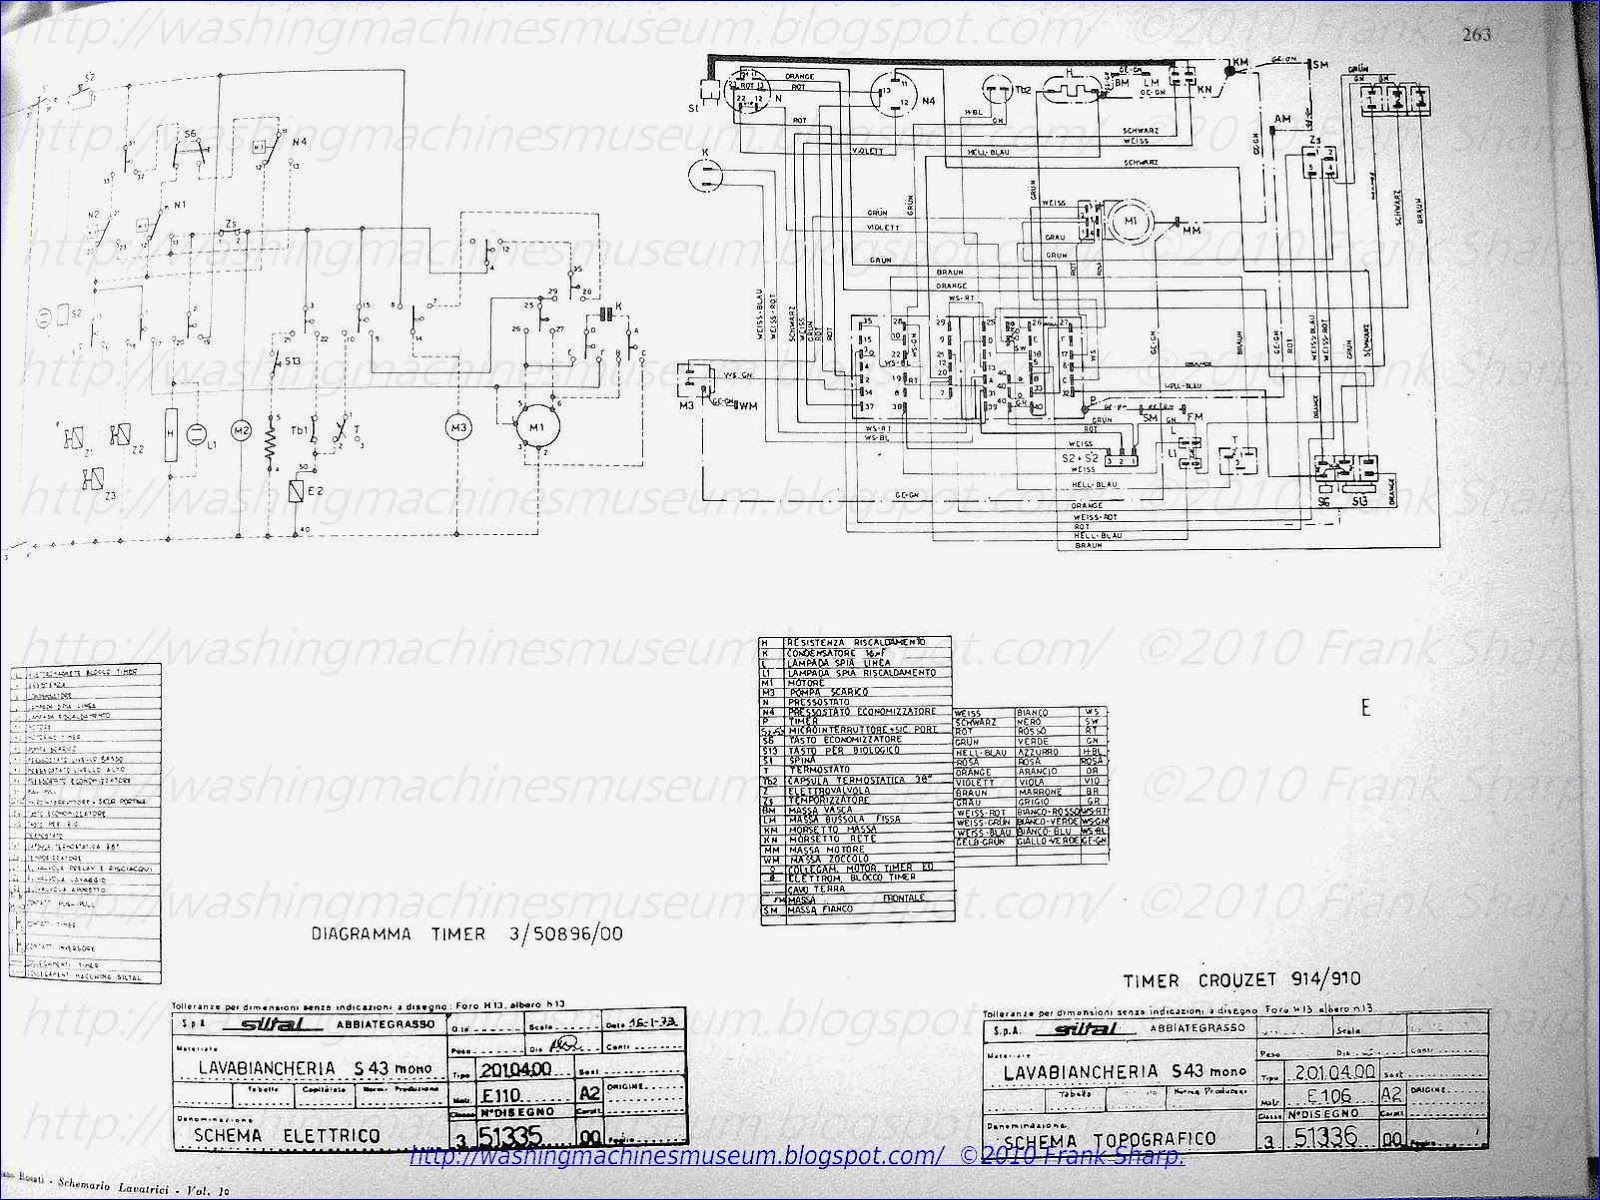 IMGH_06971__WMS washer rama museum siltal s43 mono timer crouzet 914 910 crouzet mhs2 timer wiring diagram at crackthecode.co